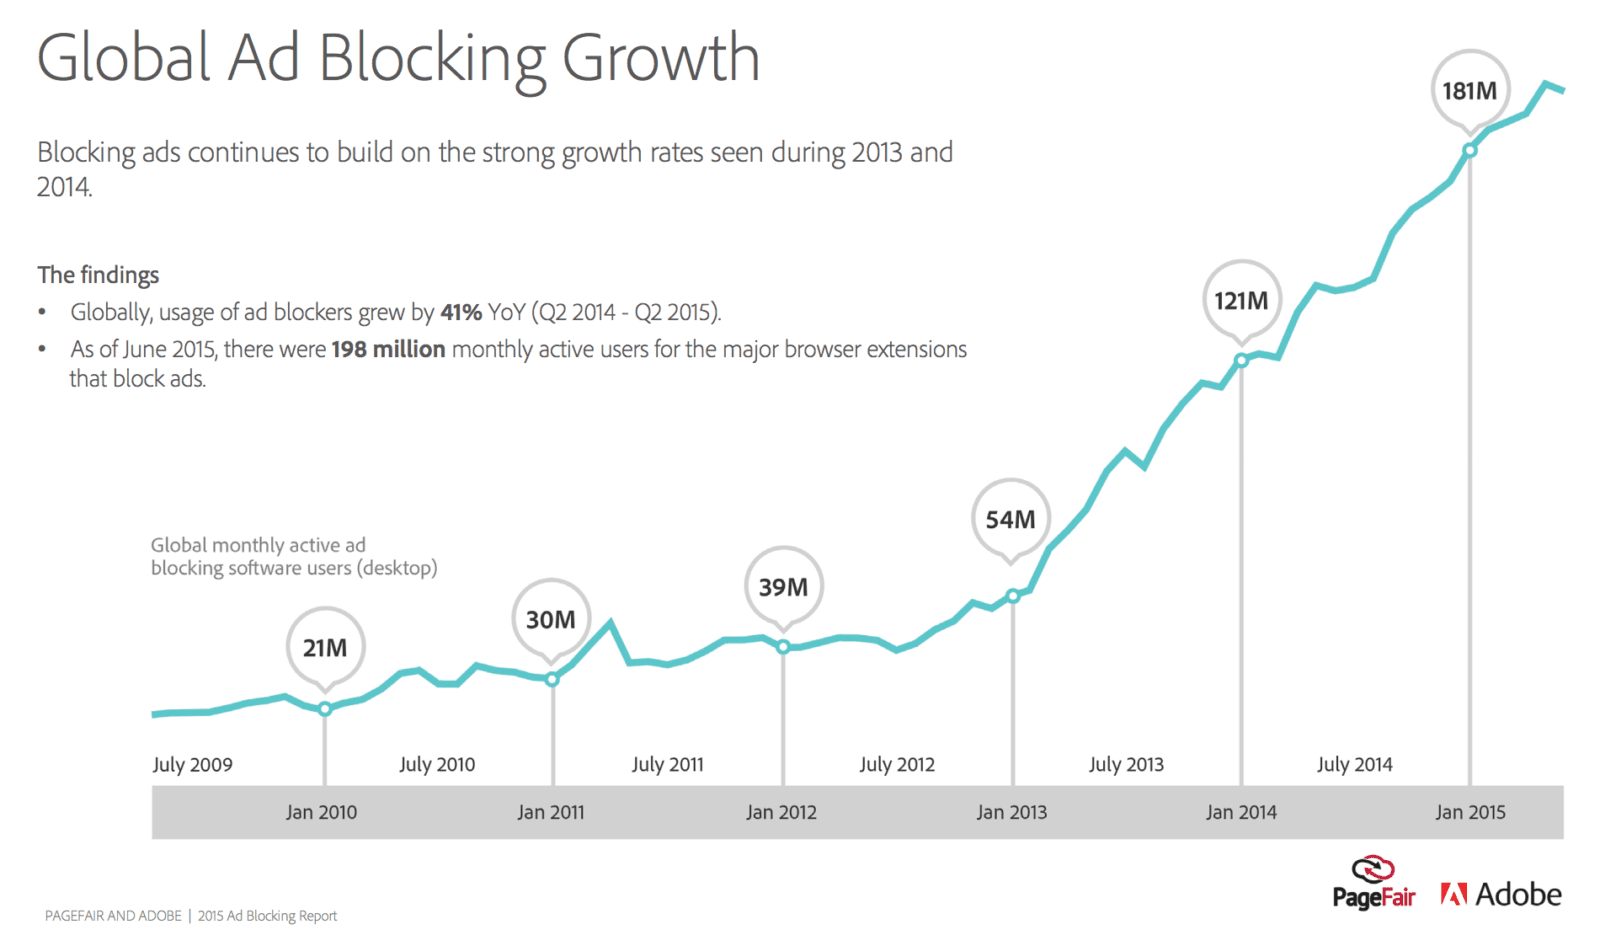 PageFair Adobe global ad blocking chart